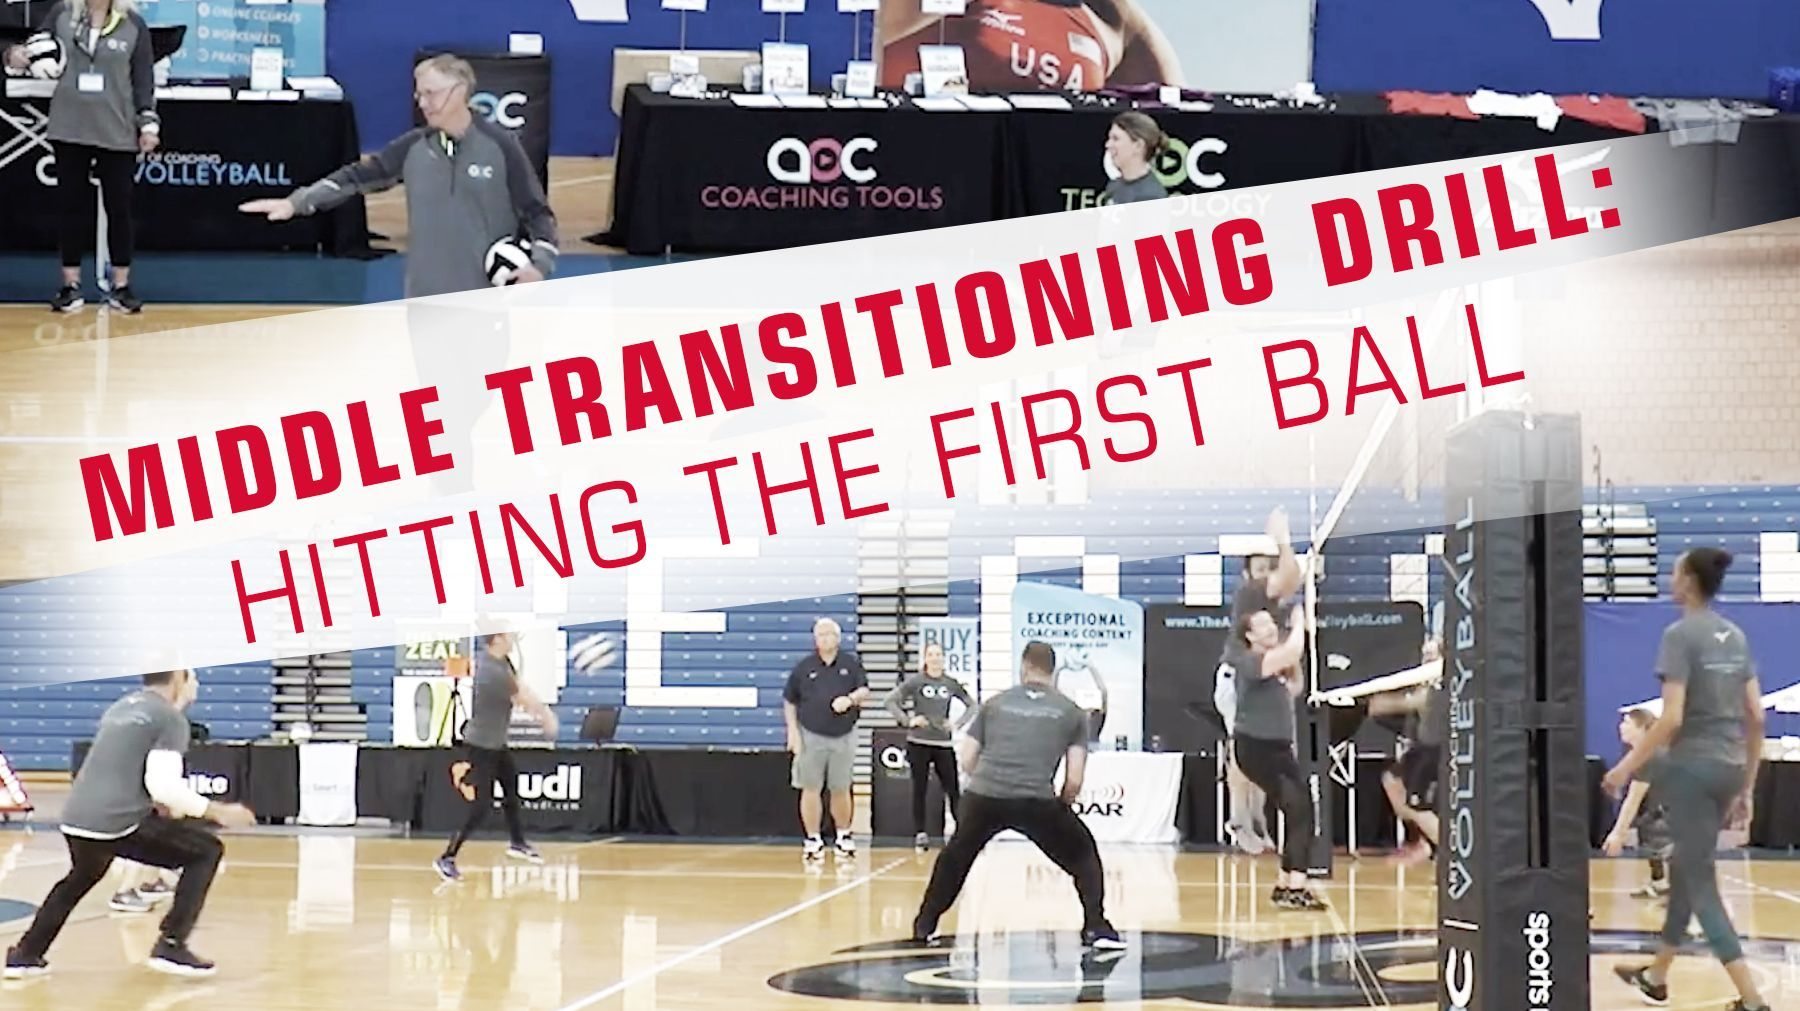 Middle Transition Drill Hitting The First Ball The Art Of Coaching Volleyball Coaching Volleyball Volleyball Skills Coaching